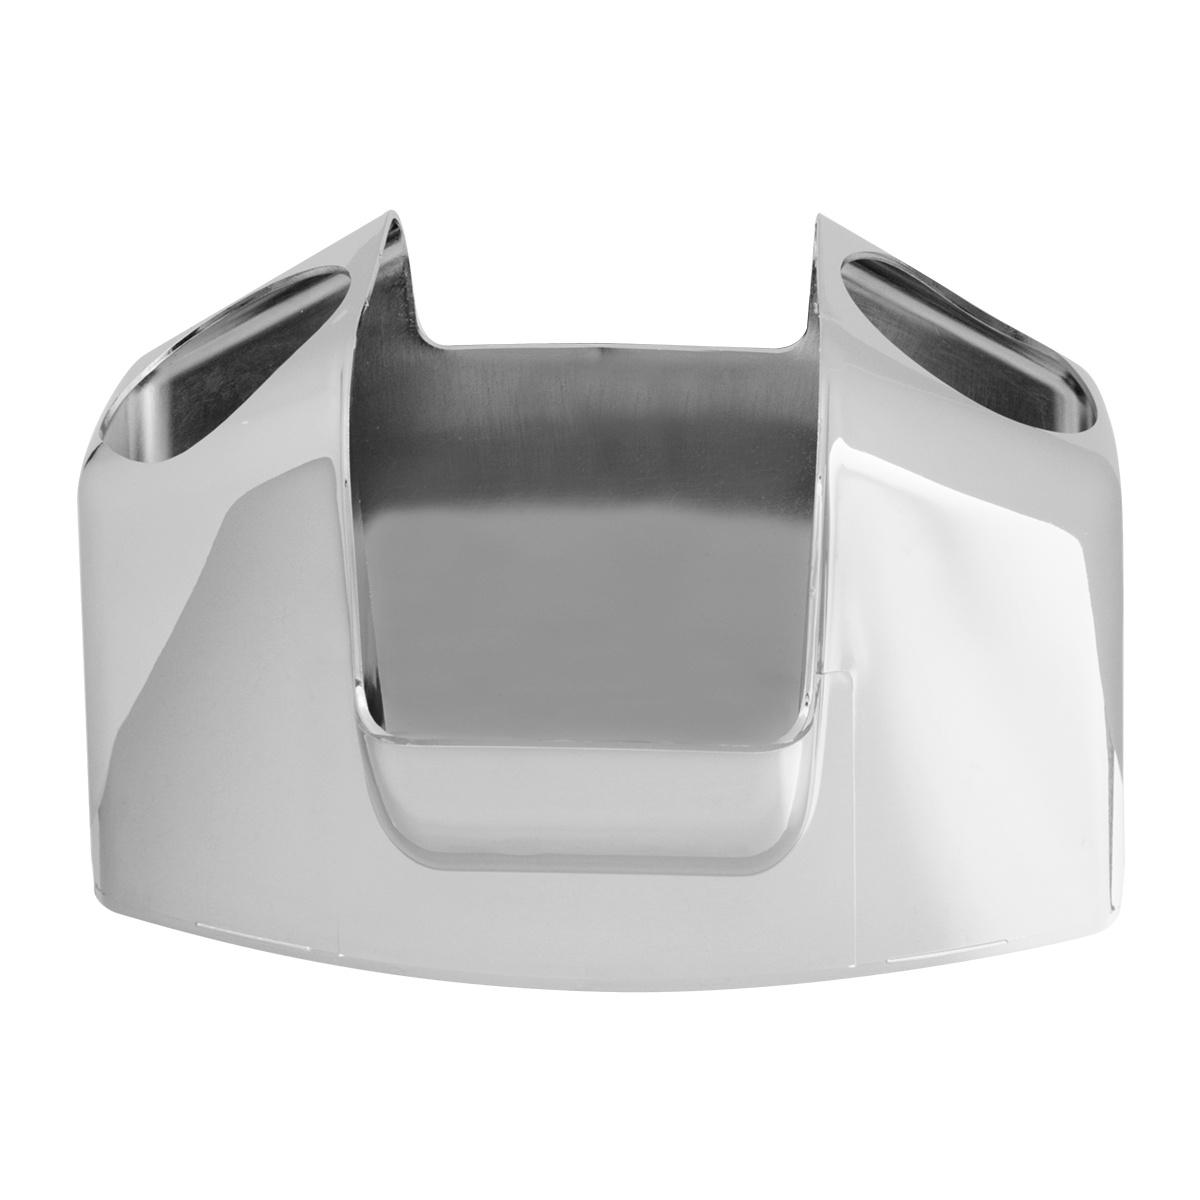 53994 Steering Column Bottom Cover for Kenworth W 1999 to 2005